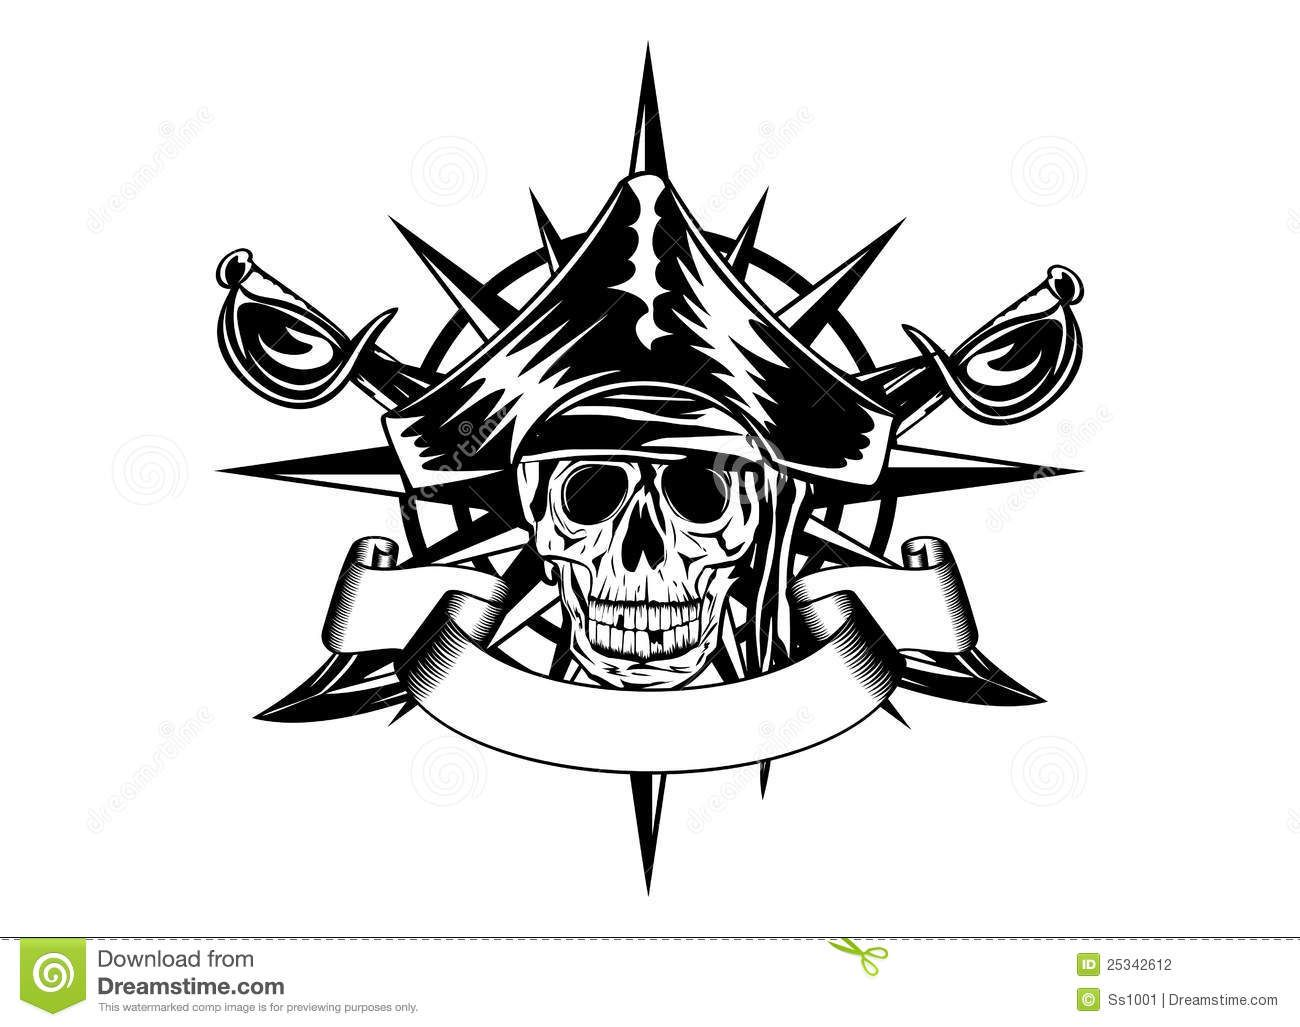 Pirates Of The Caribbean Compass Tattoo